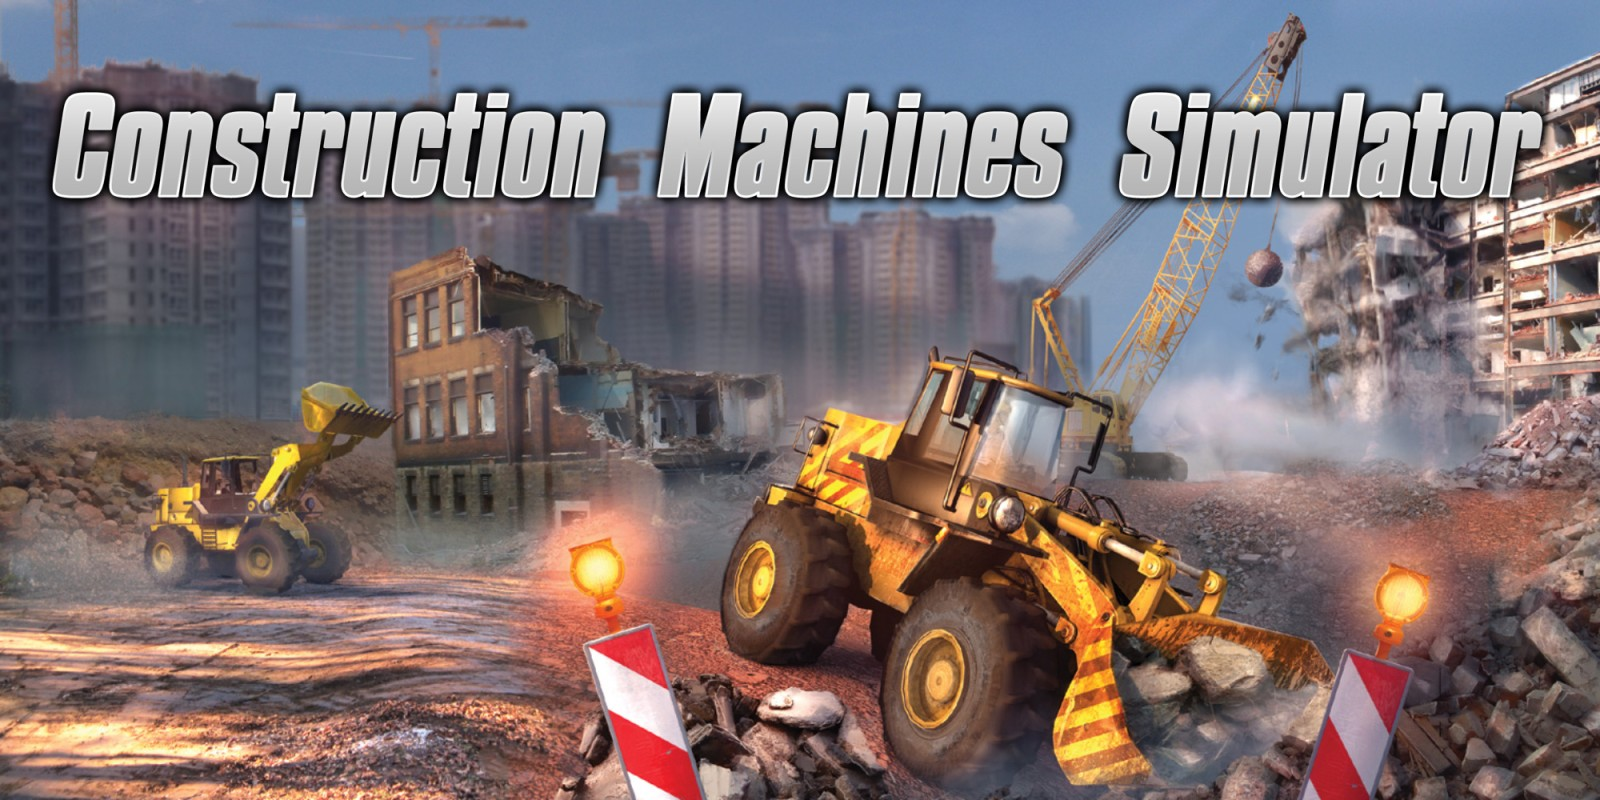 Construction Machines Simulator